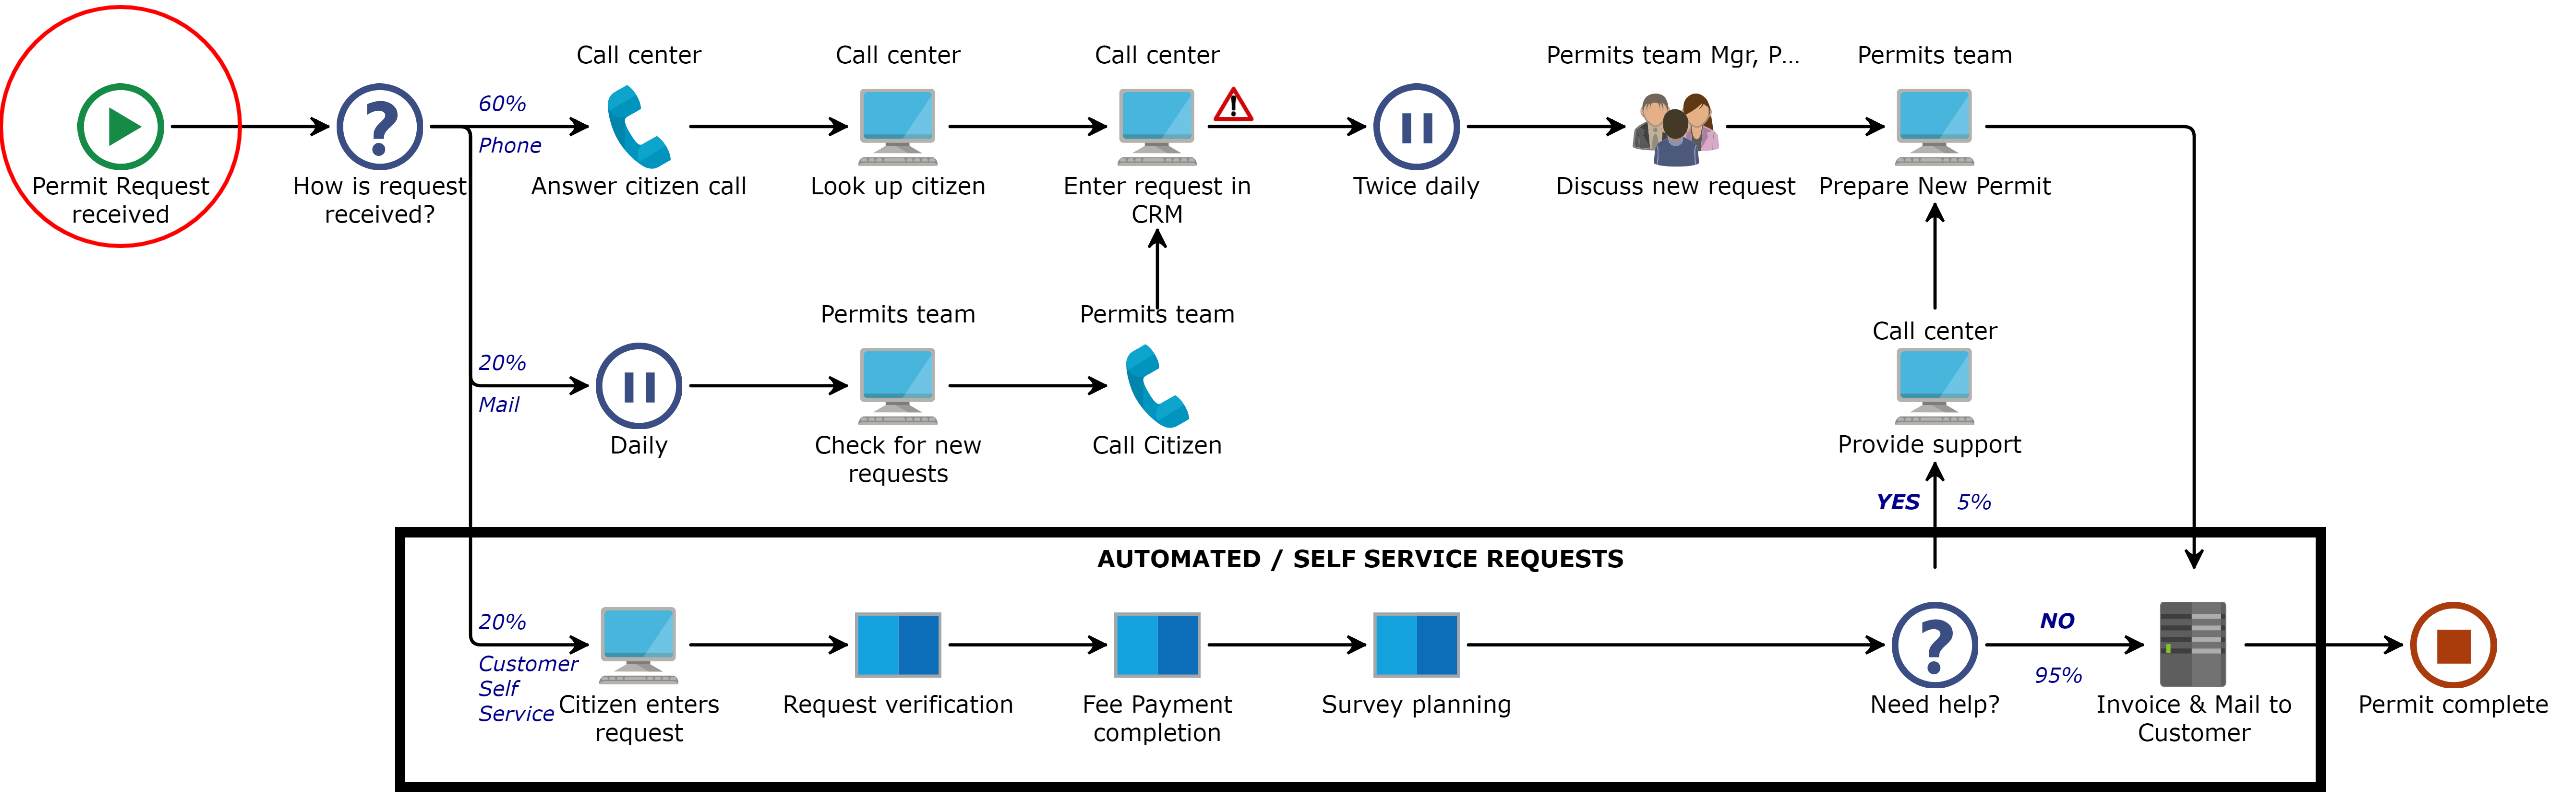 Automated Process Local Gov